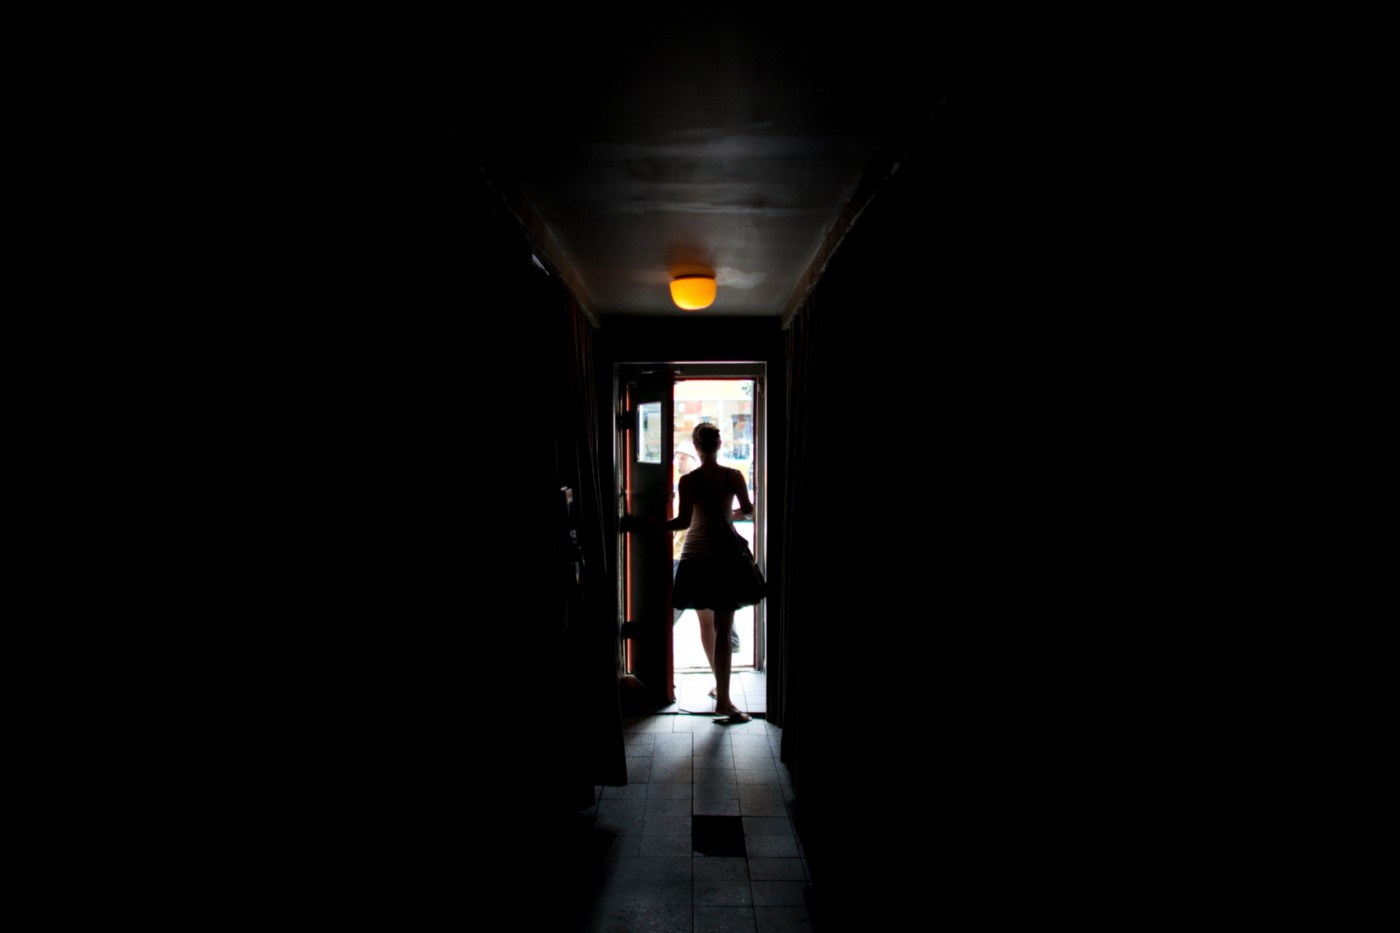 A mostly dark photo of a woman who is opening a door that casts light in the middle of the picture.